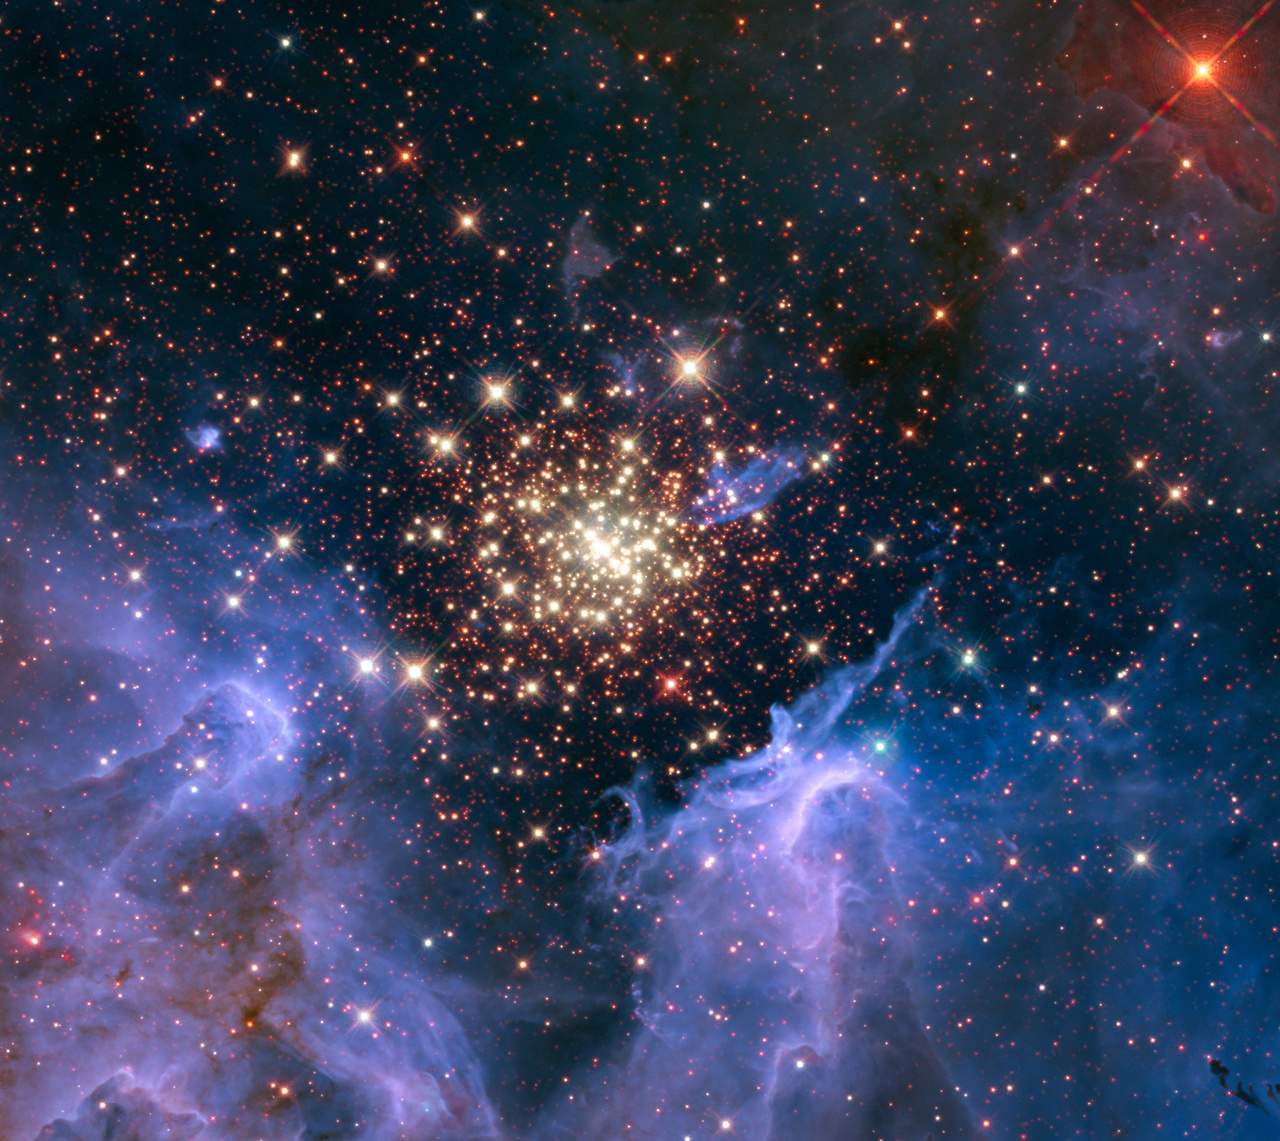 A cluster of massive stars seen with the Hubble Space Telescope. The cluster is surrounded by clouds of interstellar gas and dust called a nebula. The nebula, located 20,000 light-years away in the constellation Carina, contains the central cluster of huge, hot stars, called NGC 3603. Recent research shows that galactic cosmic rays flowing into our solar system originate in clusters like these. Image credits: NASA/U. Virginia/INAF, Bologna, Italy/USRA/Ames/STScI/AURA.